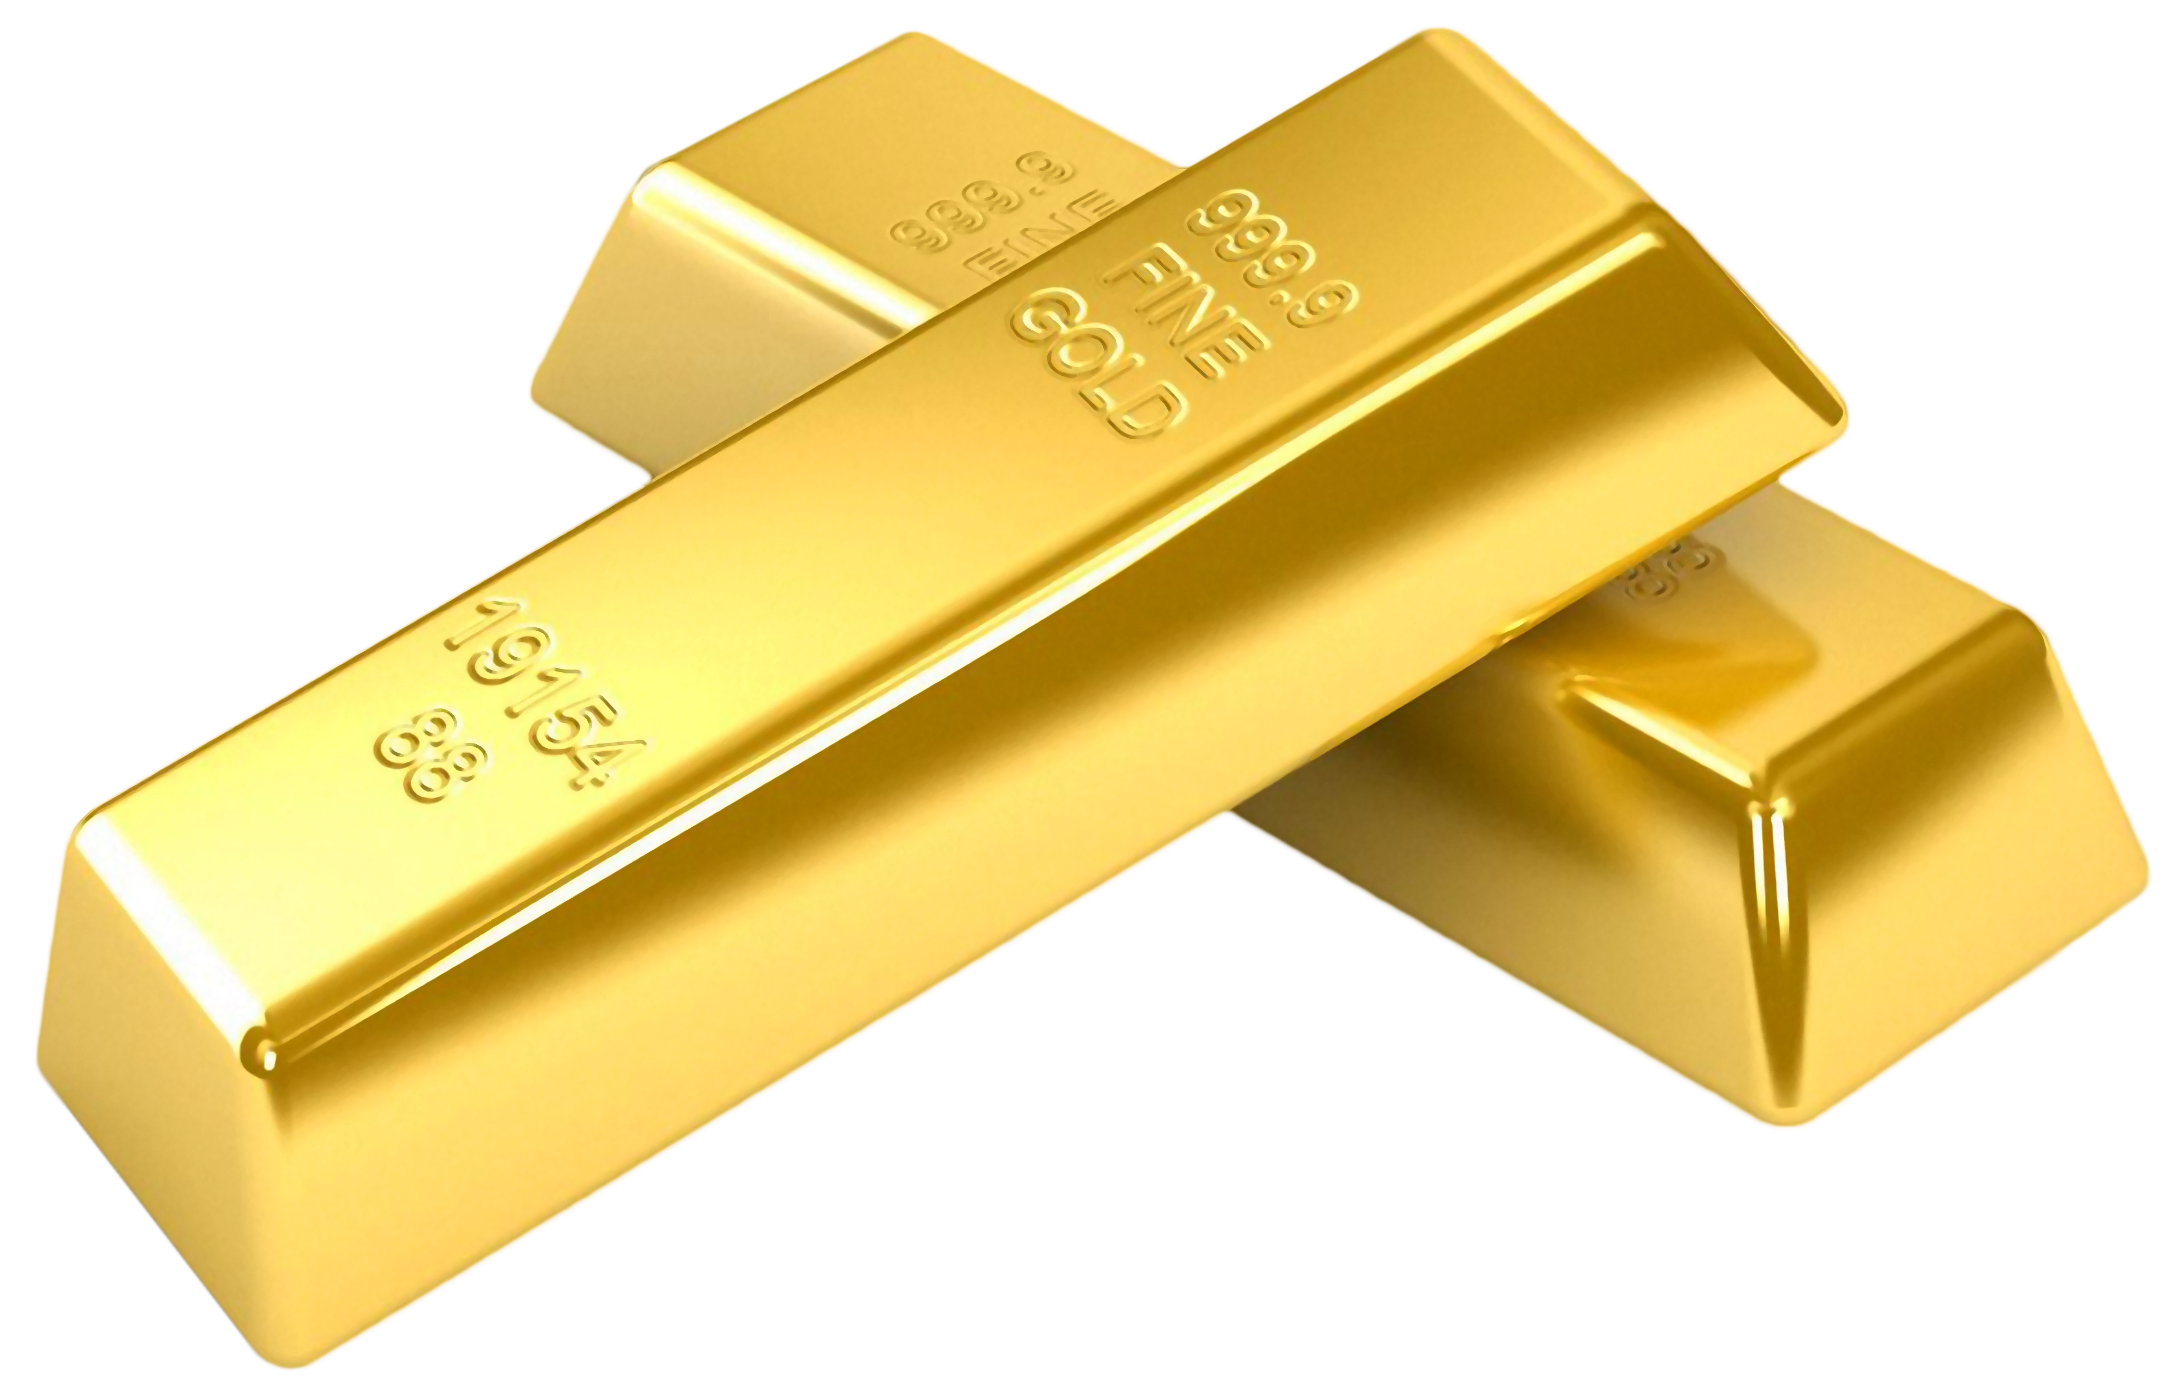 Free Gold Cliparts, Download Free Clip Art, Free Clip Art on.